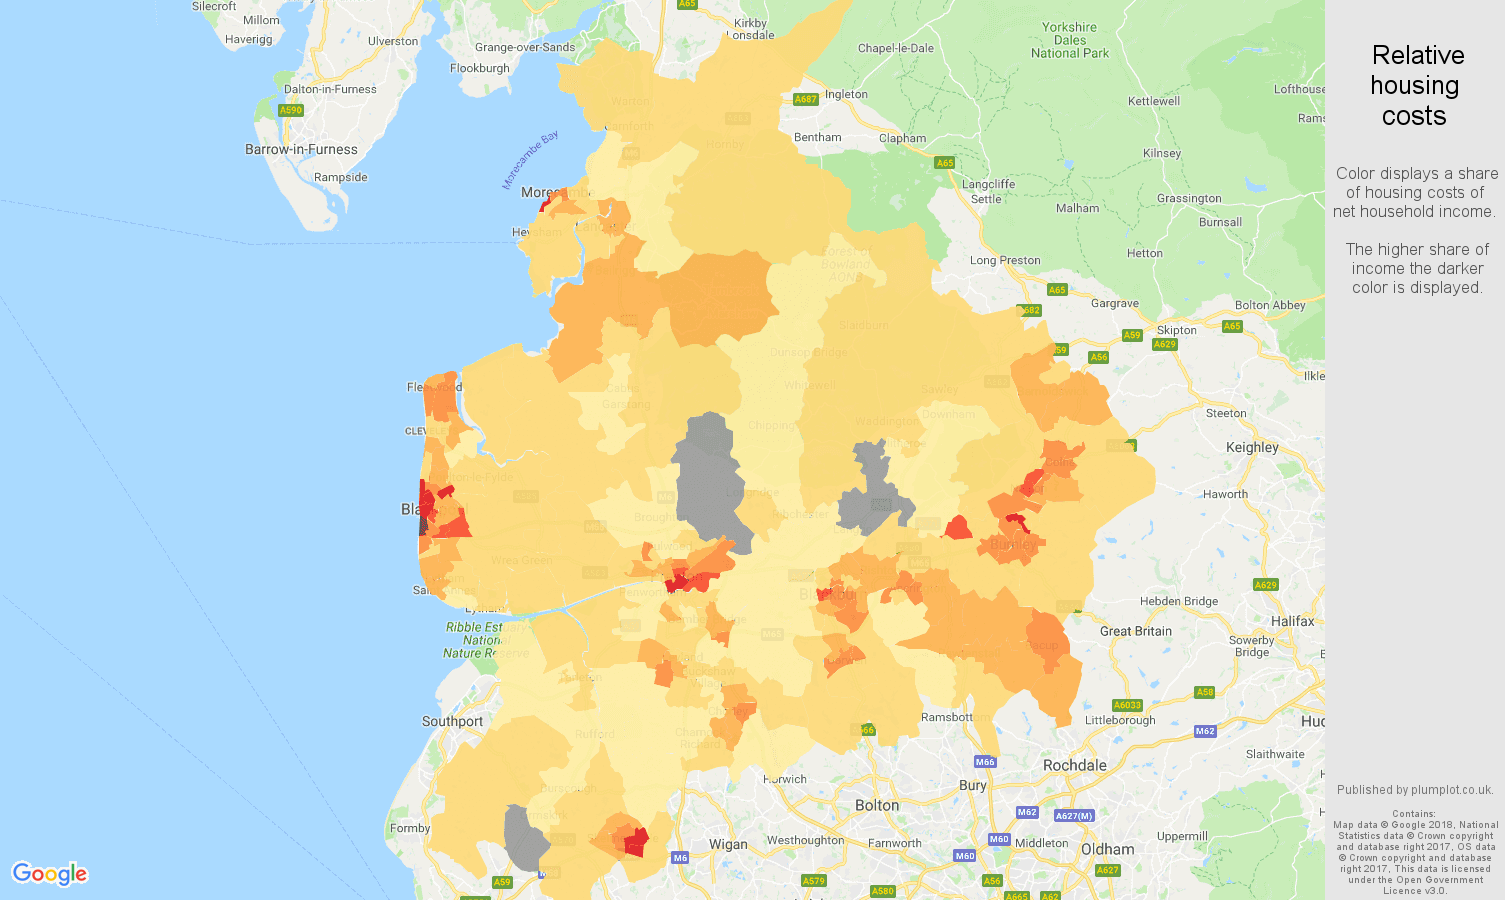 Lancashire relative housing costs map